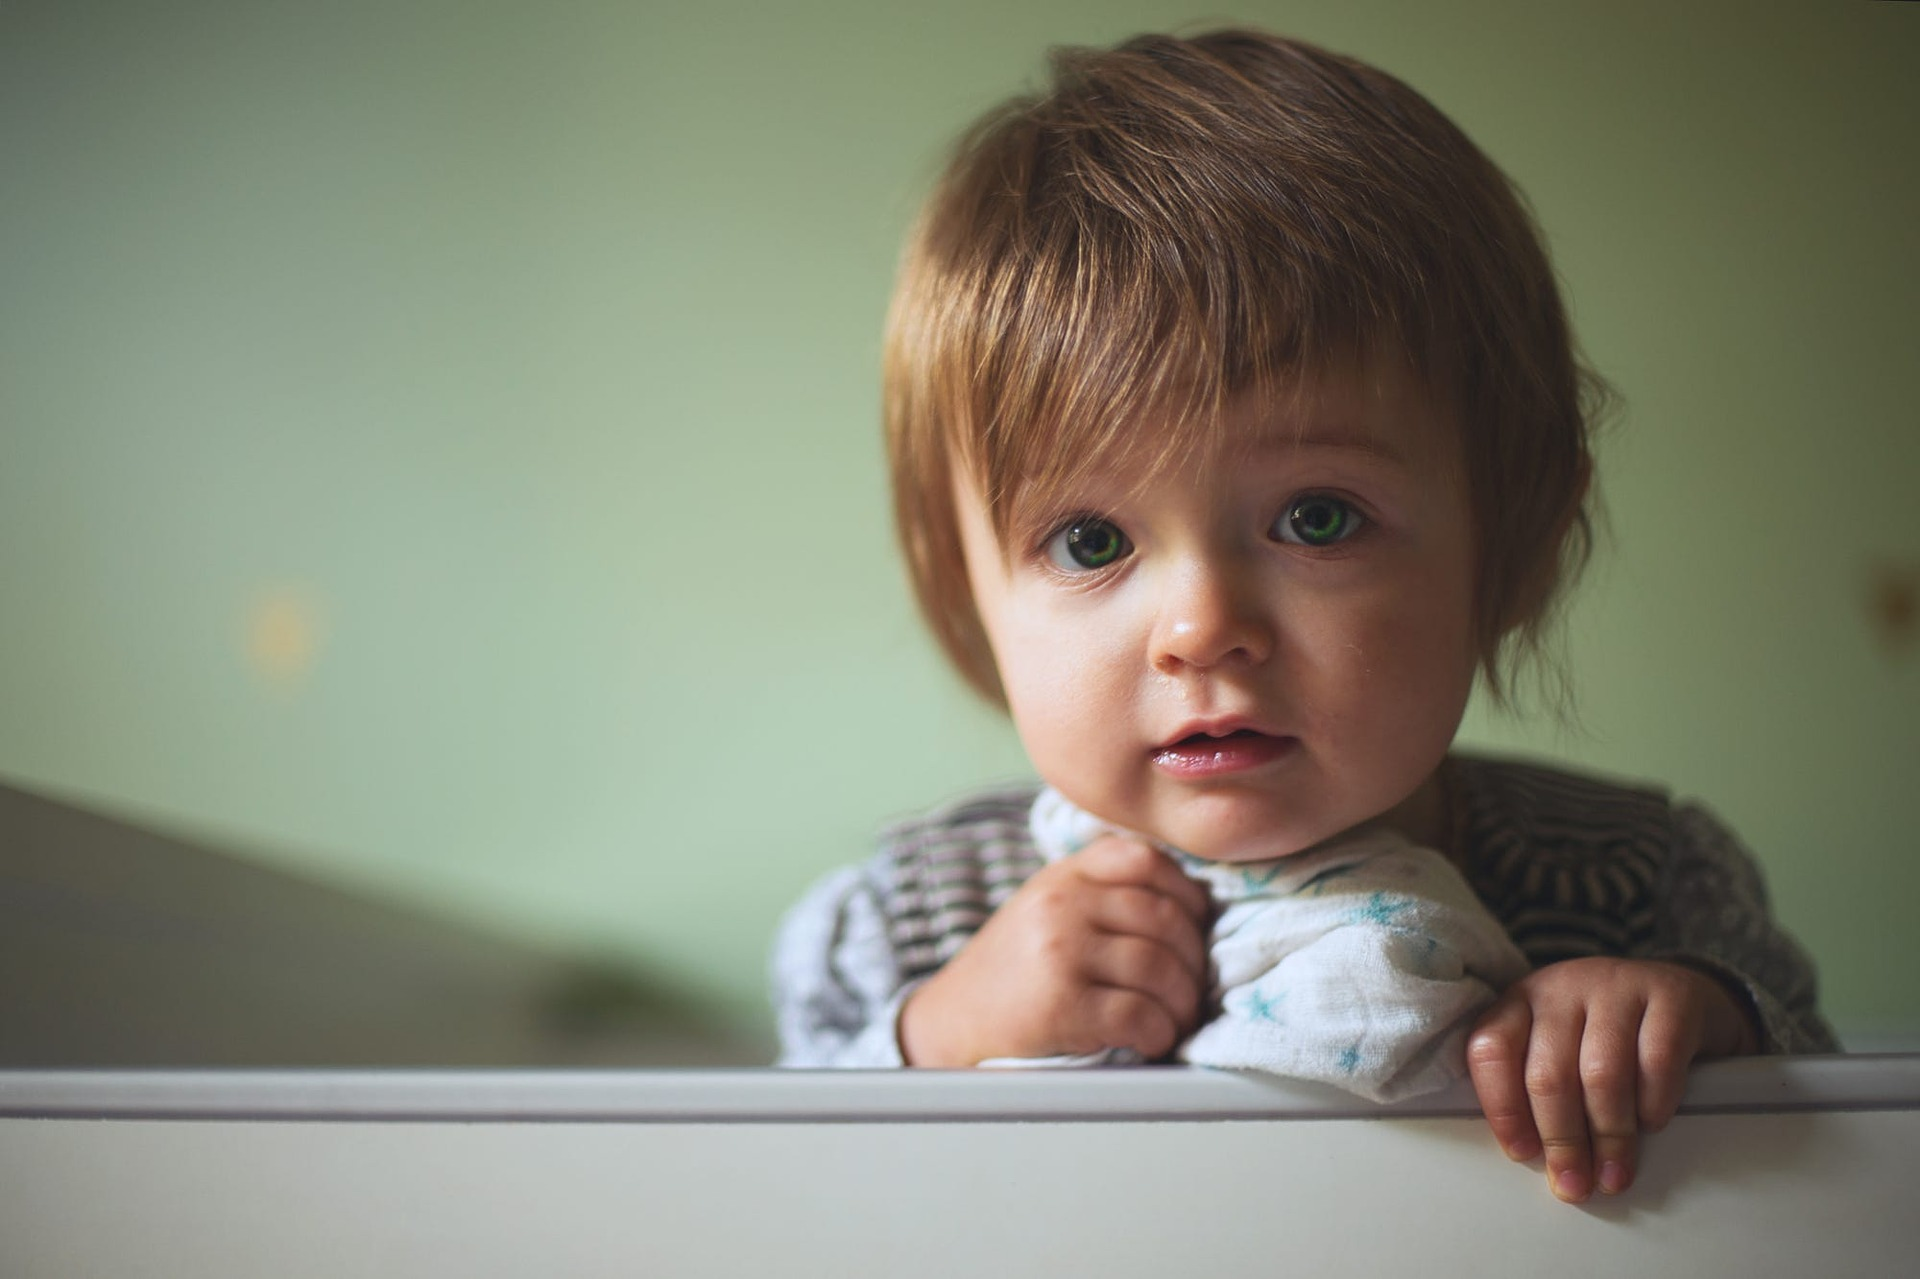 Image of a young child